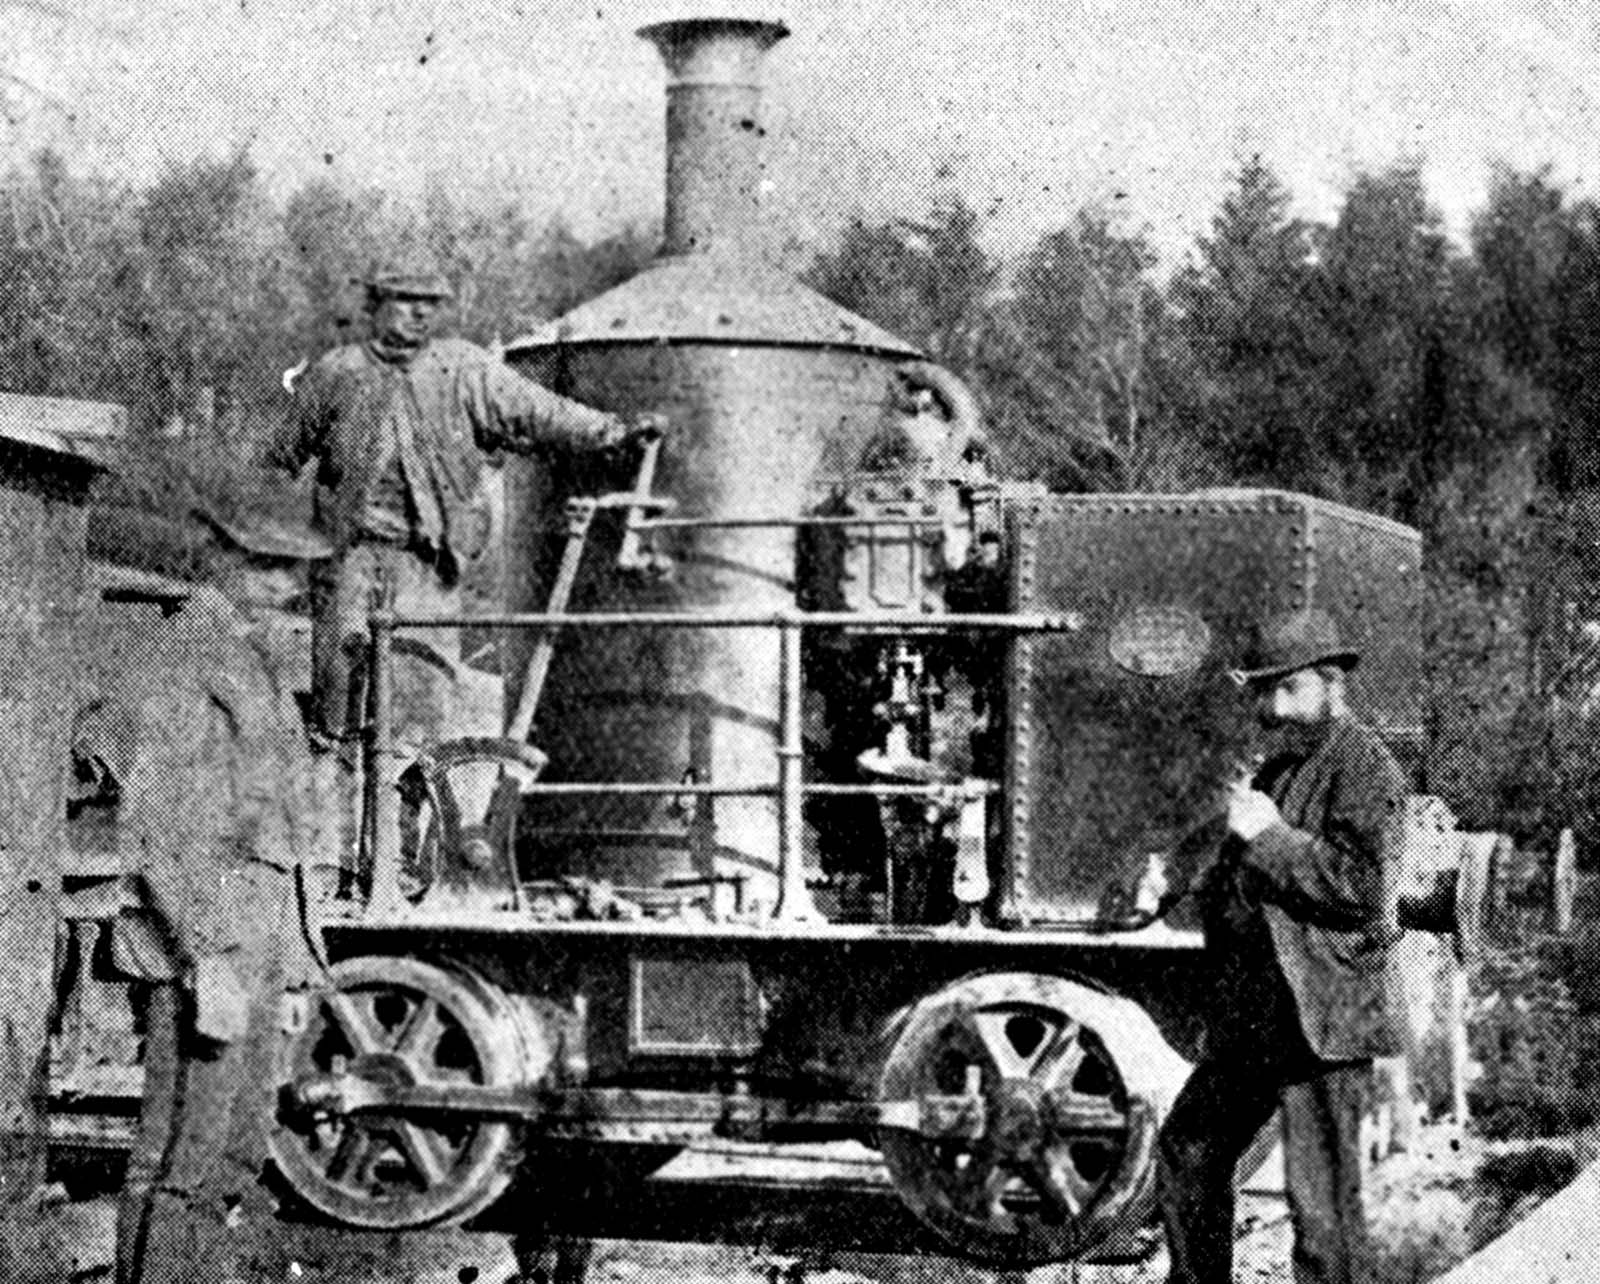 black and white photo of steam locomotive with a large boiler like a coffee pot